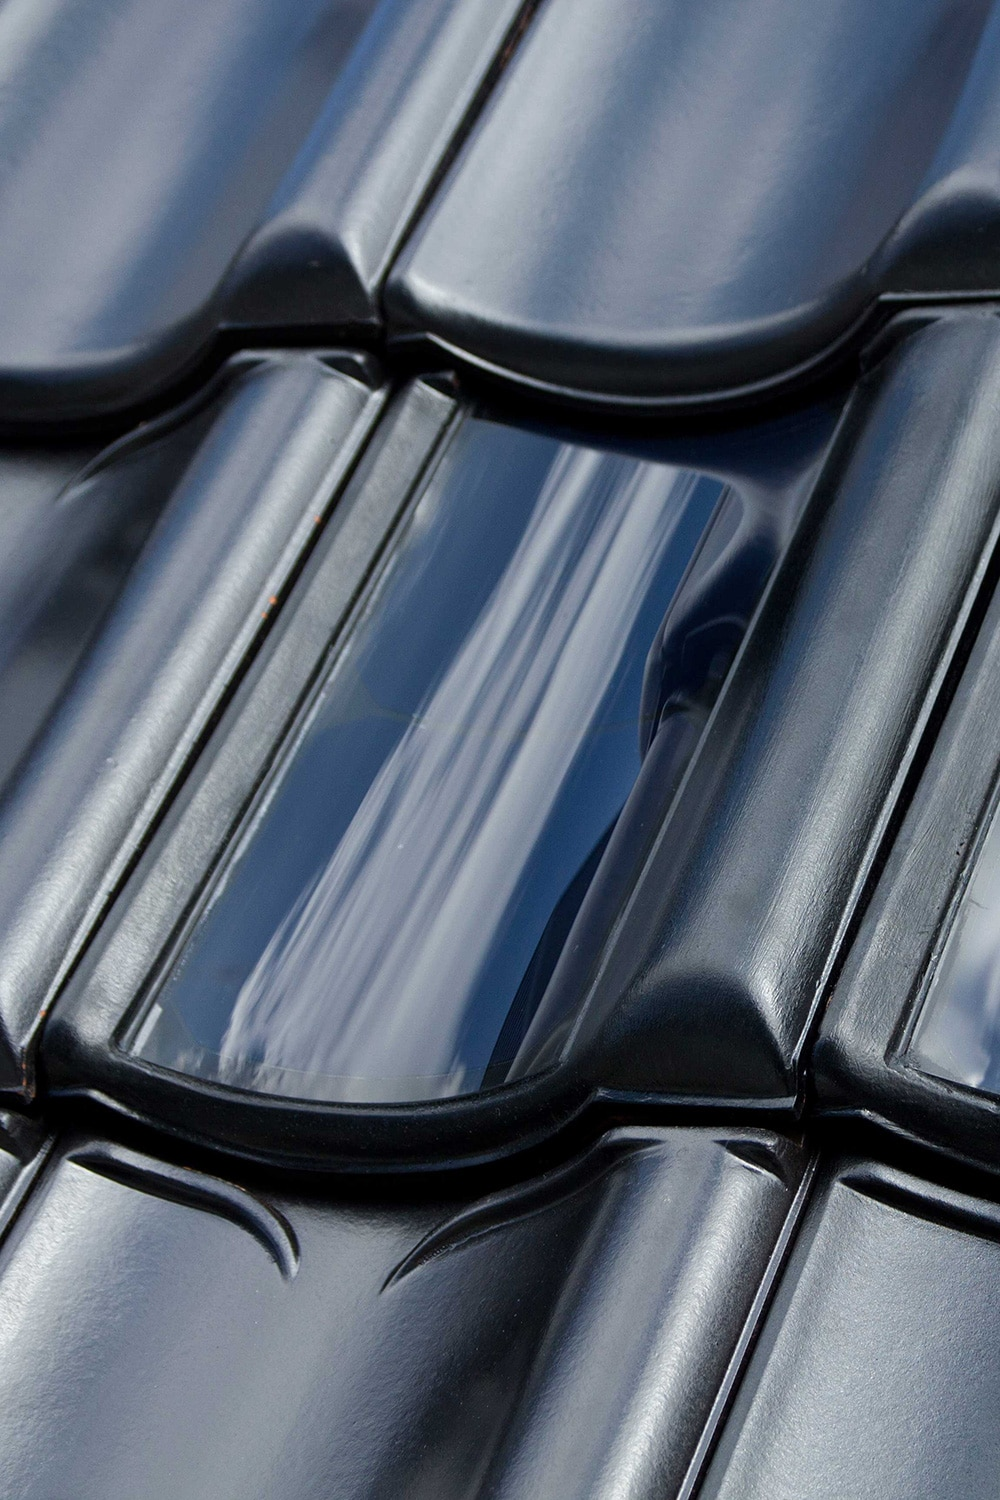 FlexSol solar PV roof tile - BiPV or building integrated PV in the form of a ceramic curved roof tile with flexible PV cells